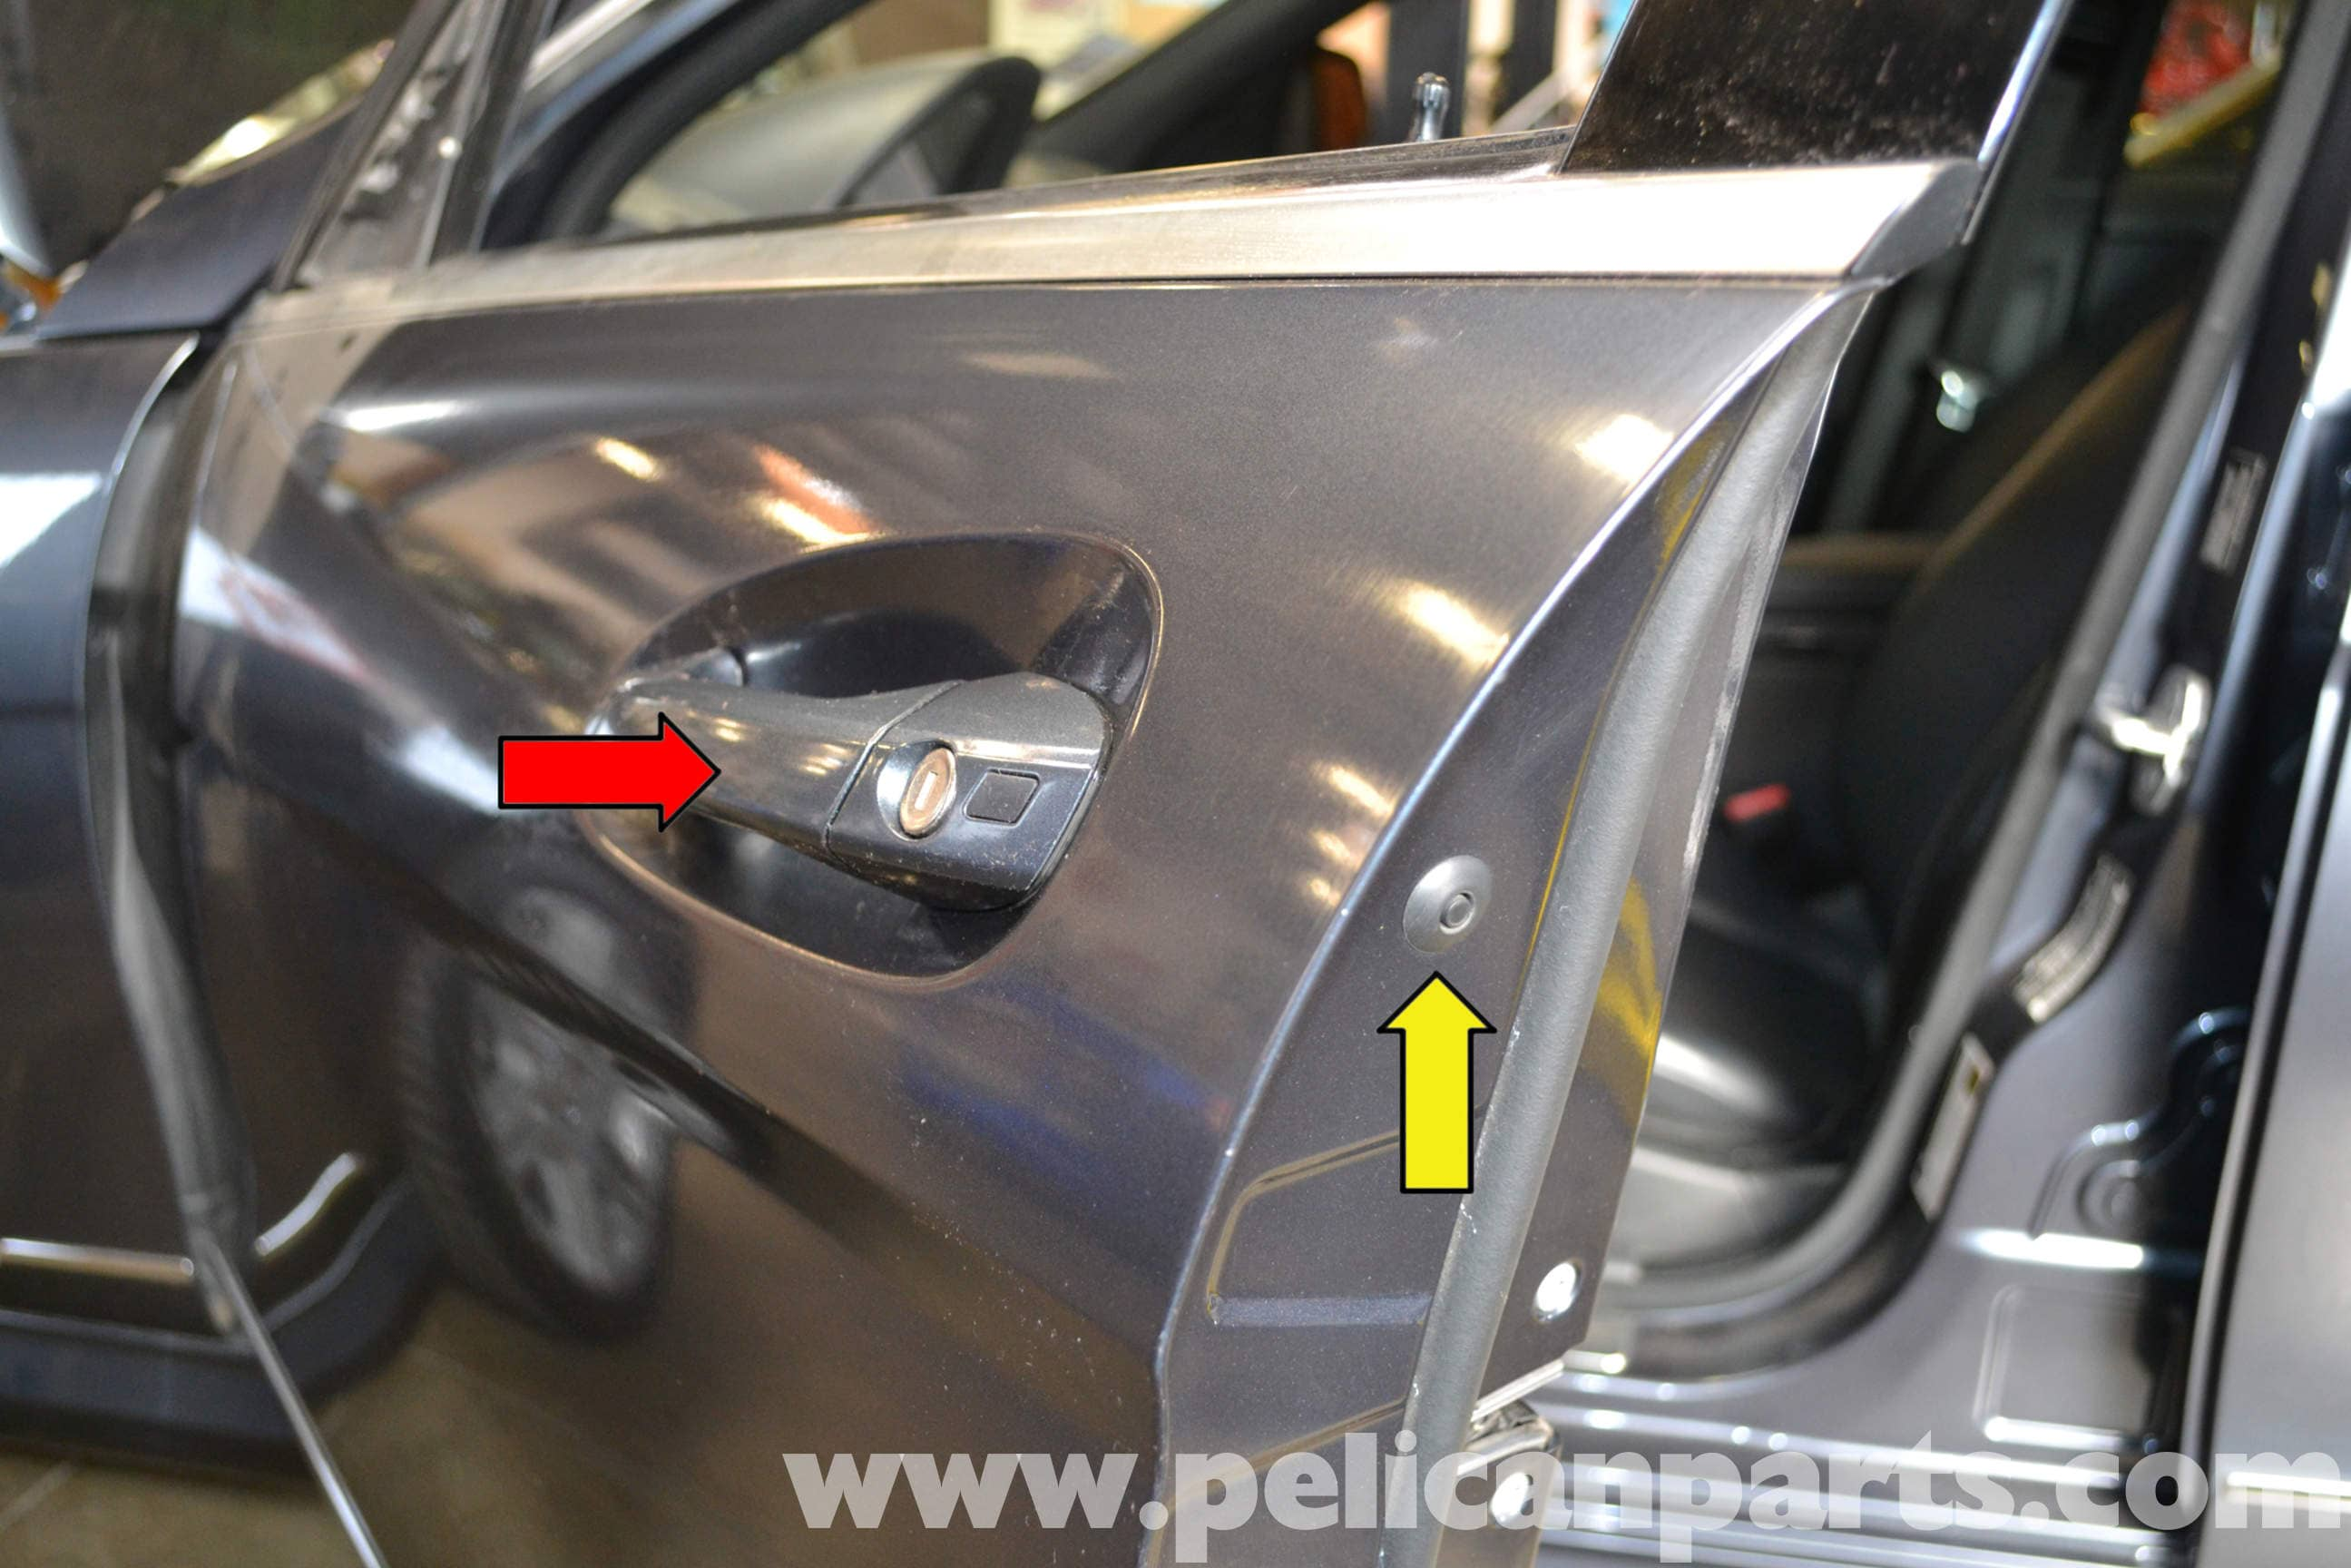 Mercedes Benz W204 Exterior Door Handle Removal 2008